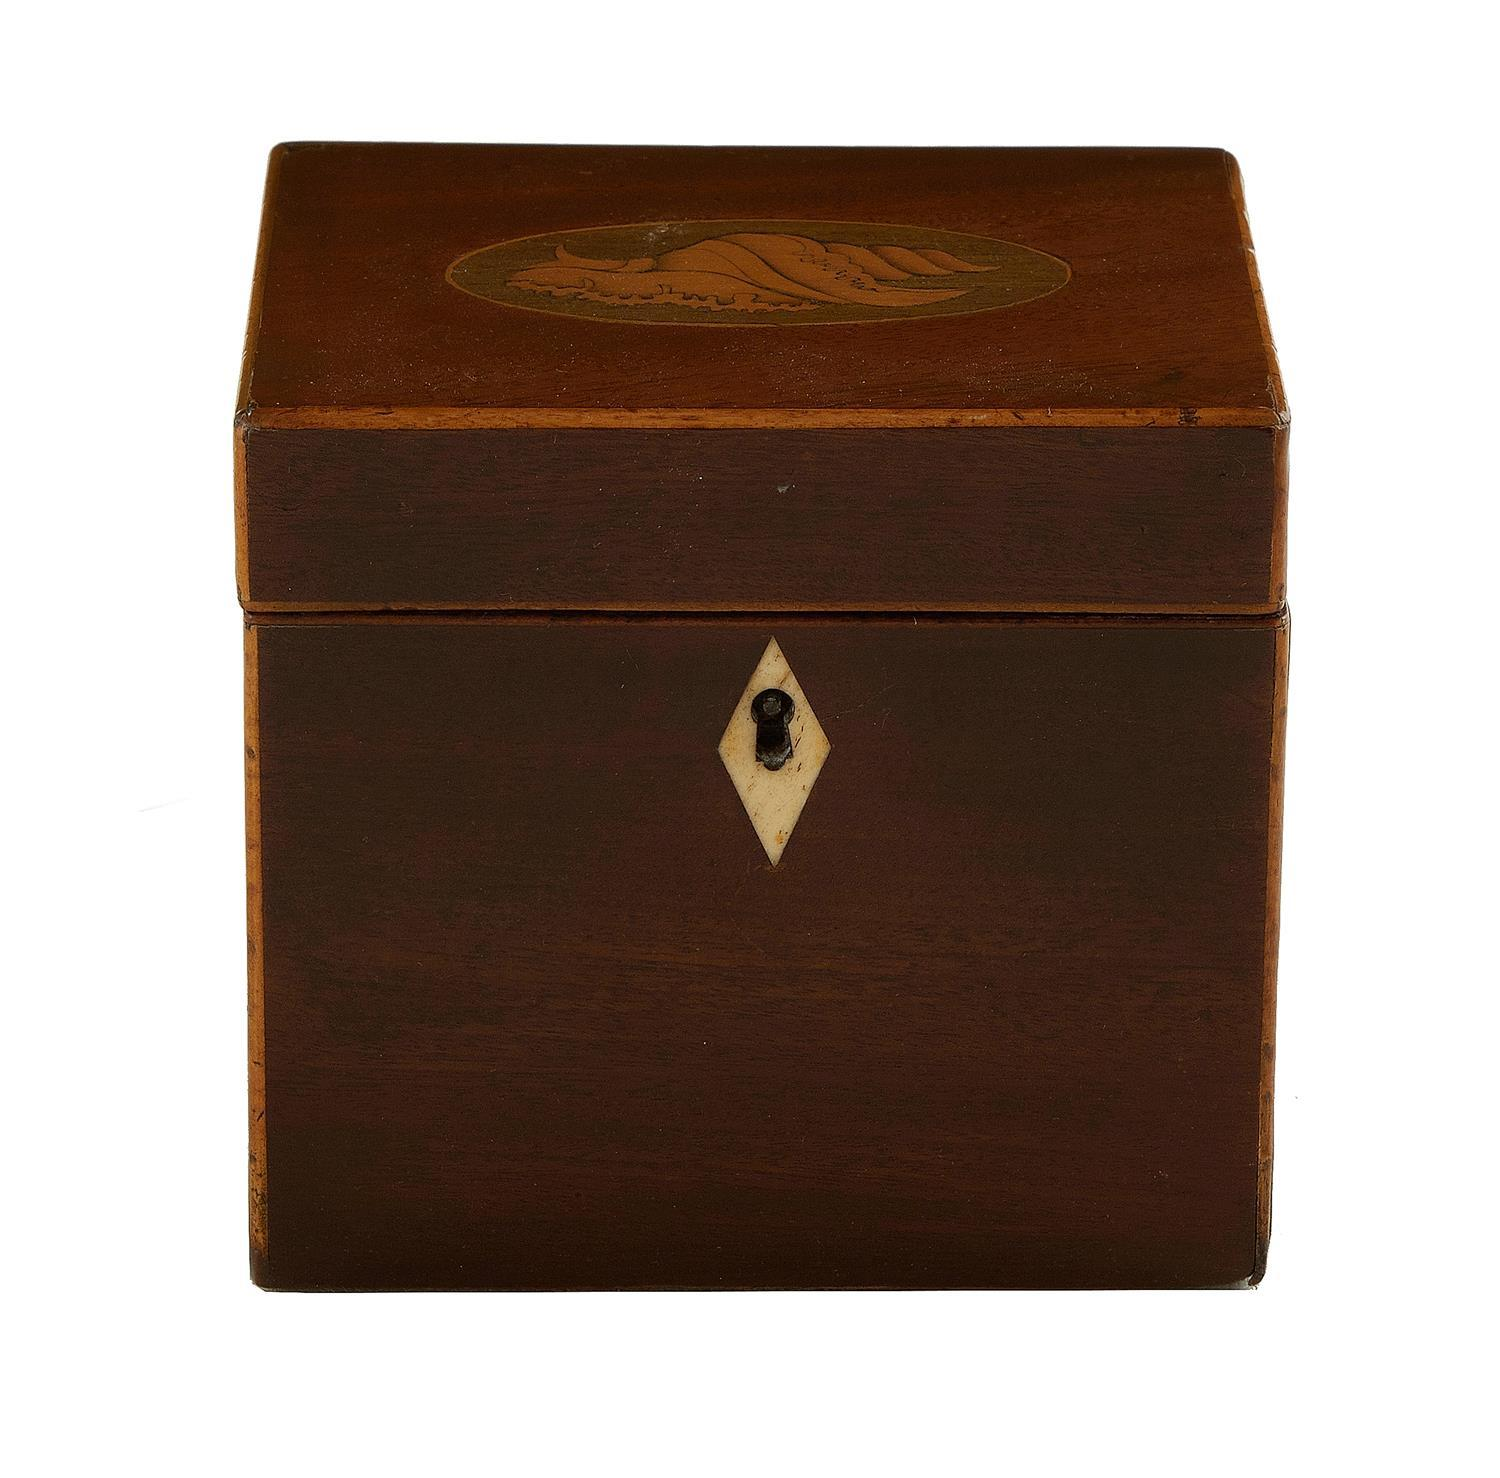 Georgian conch-shell inlaid and stained tea caddy